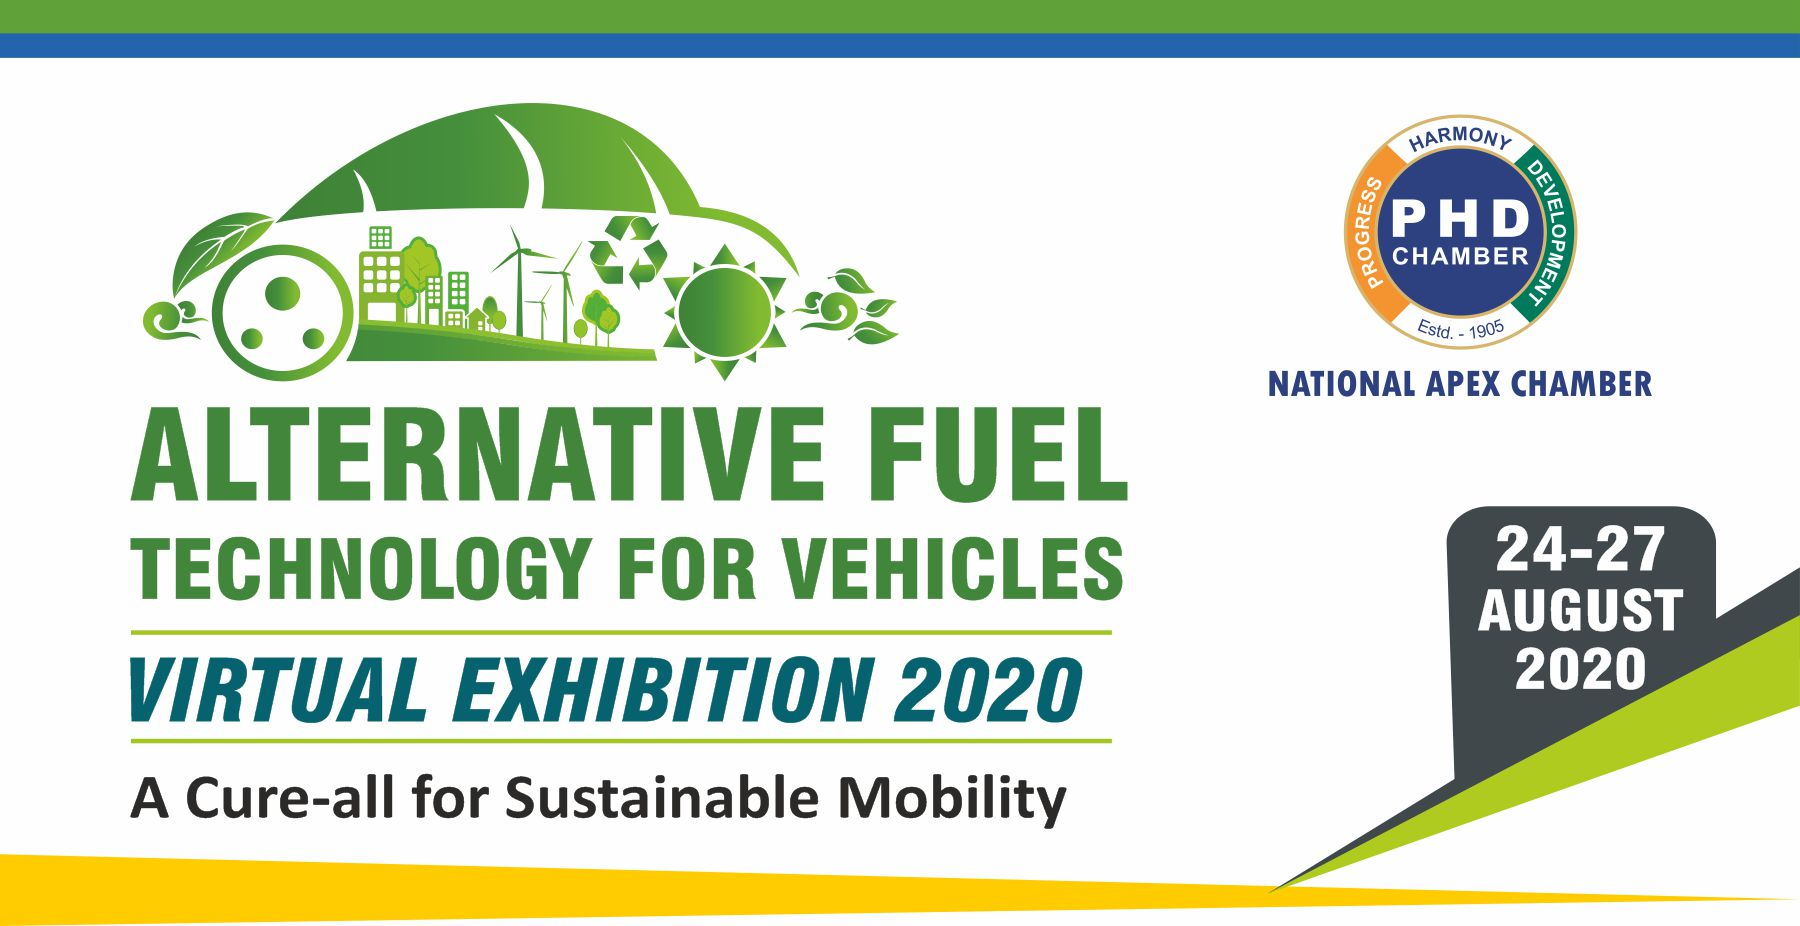 VIRTUAL EXHIBITION 2020 – ALTERNATIVE FUEL TECHNOLOGY FOR VEHICLES